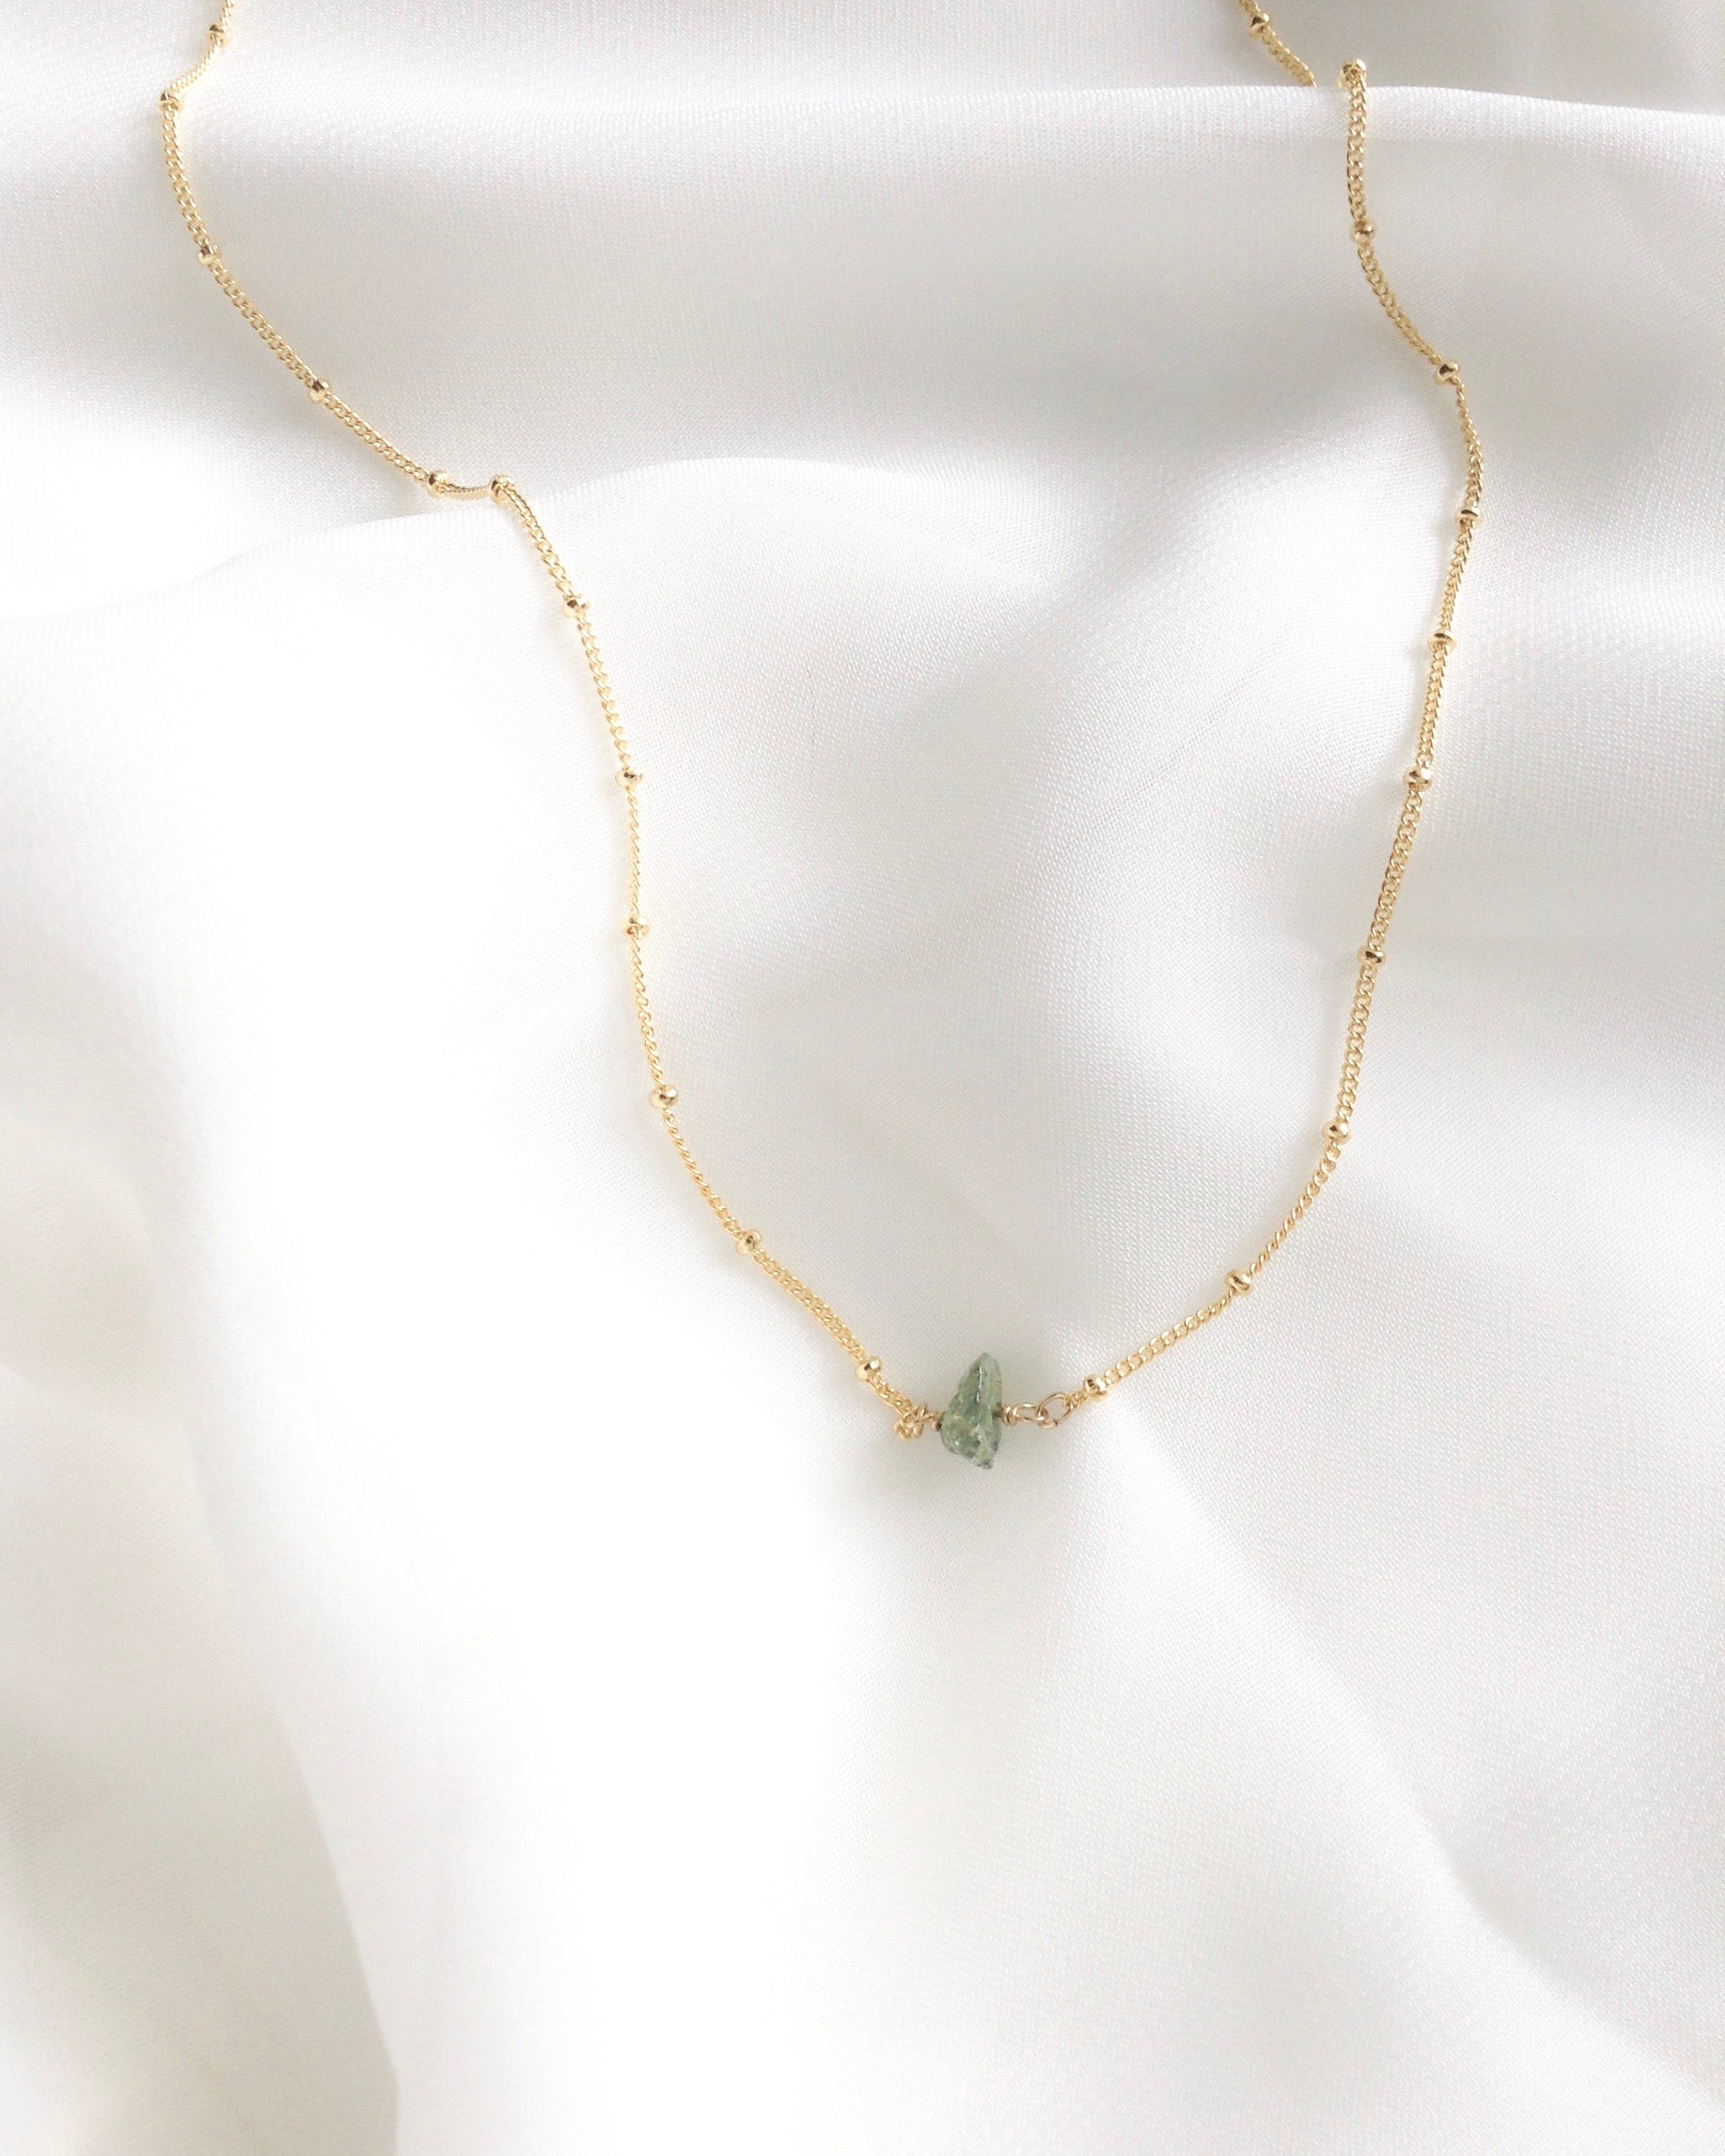 Minimalist Emerald Necklace in Gold Filled or Sterling Silver | IB Jewelry